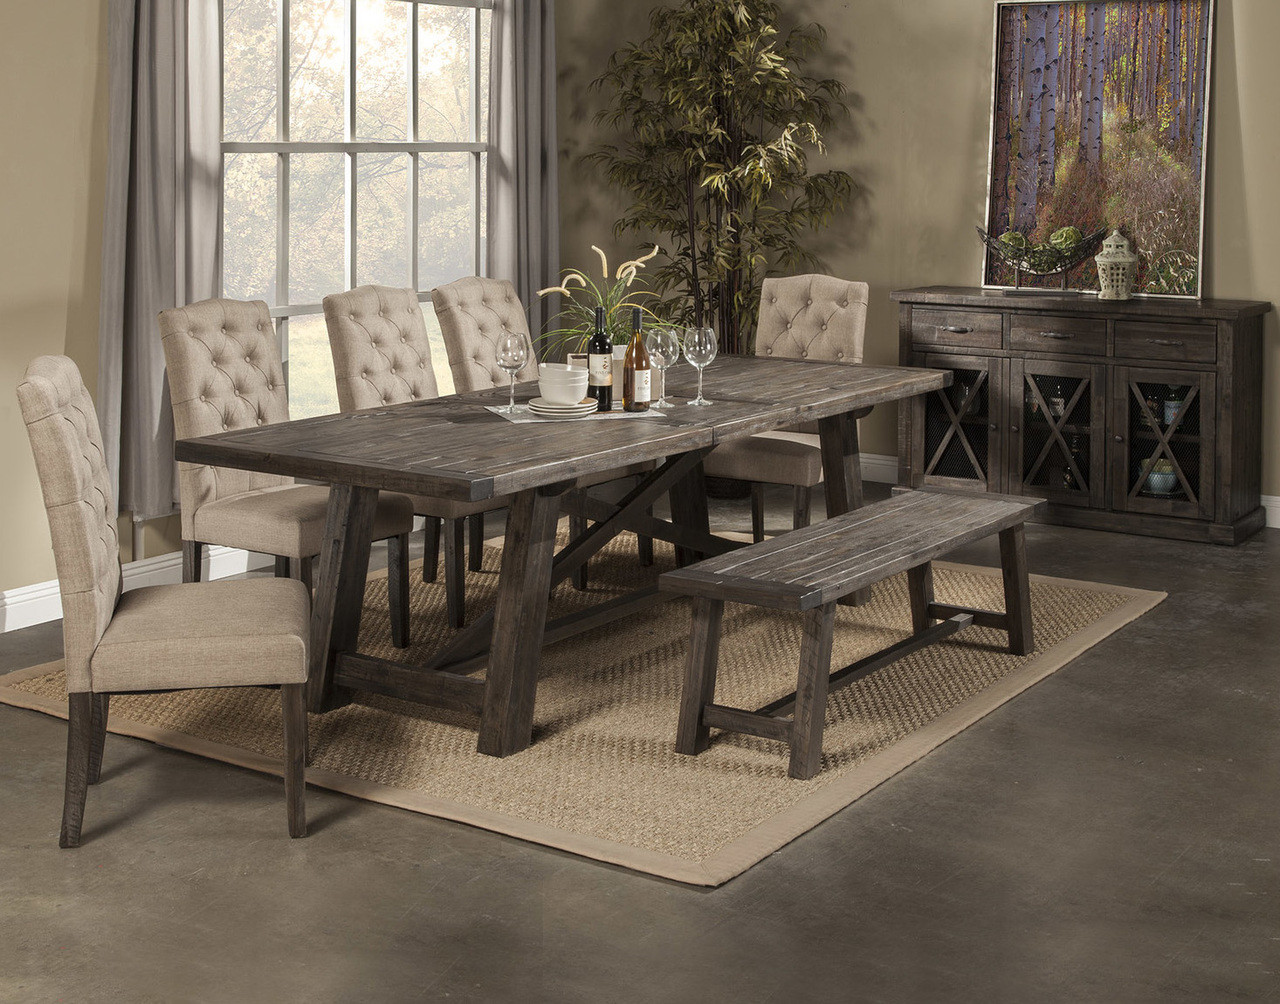 Newberry Dining Table With 4 Chairs Amp Bench